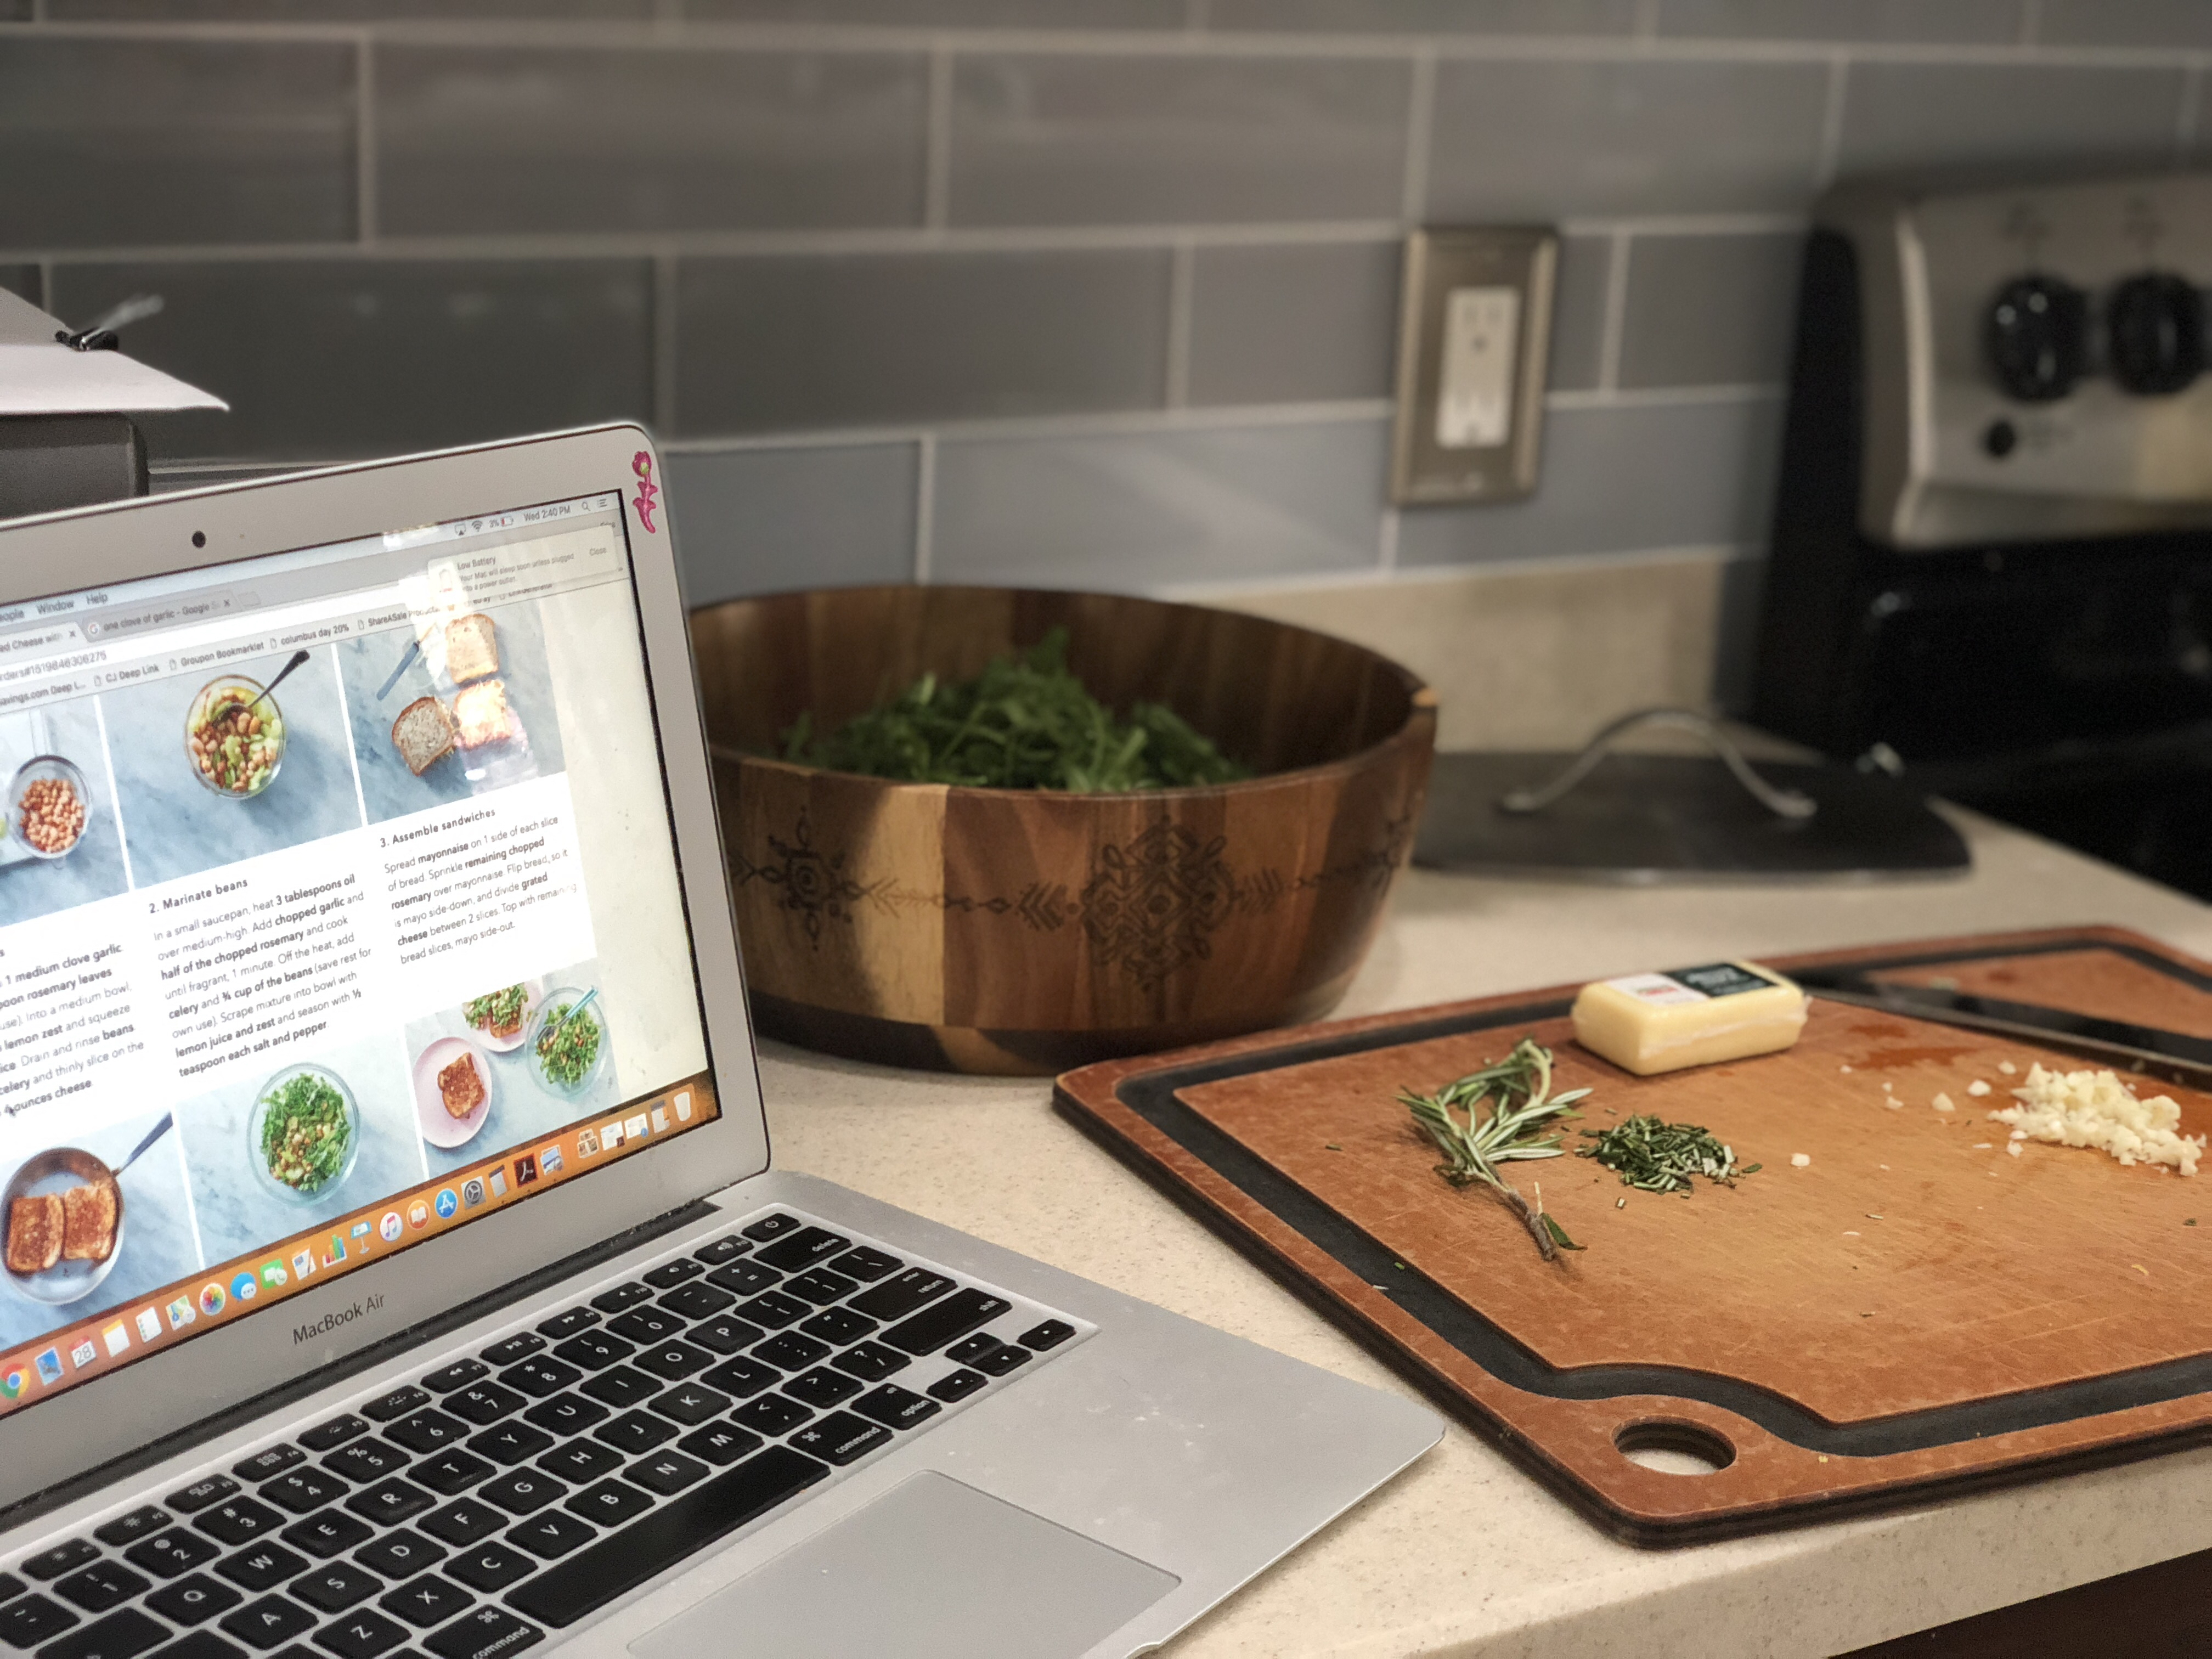 Martha and Marley Spoon deal - a laptop with recipes open on a counter top near a cutting board